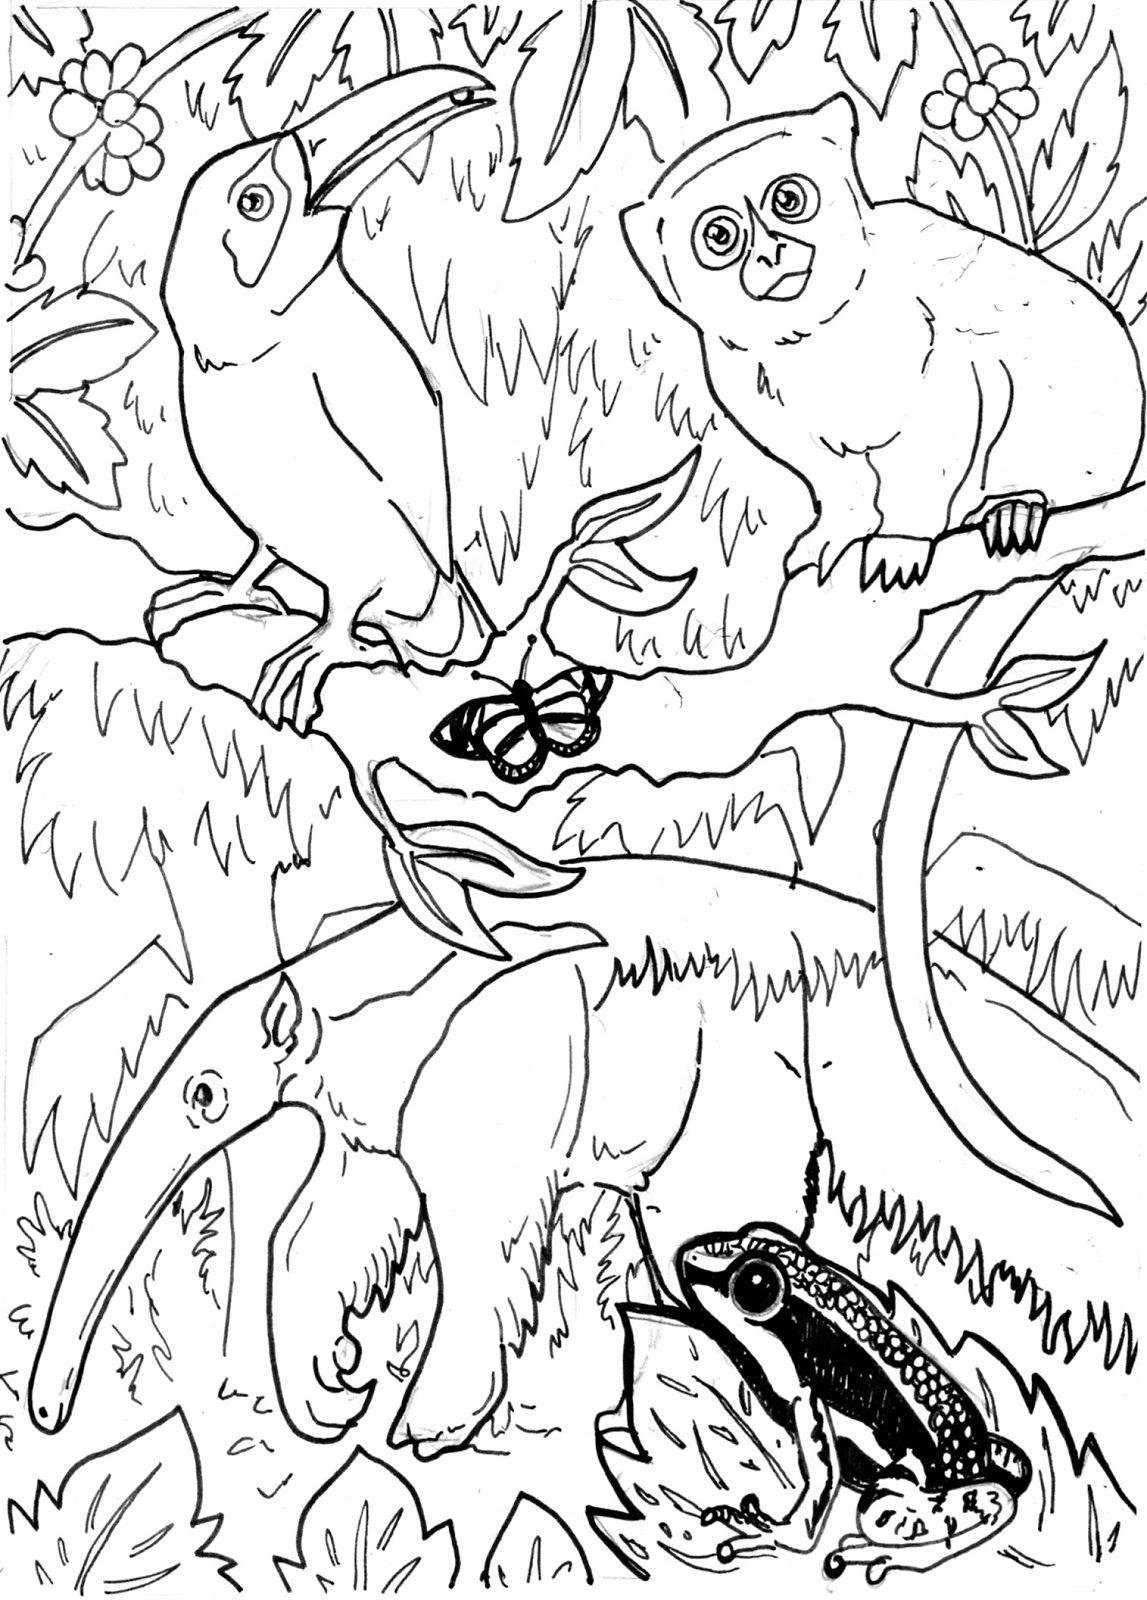 Coloring pages rainforest - Printable Rainforest Animal Coloring Pages Free Printable